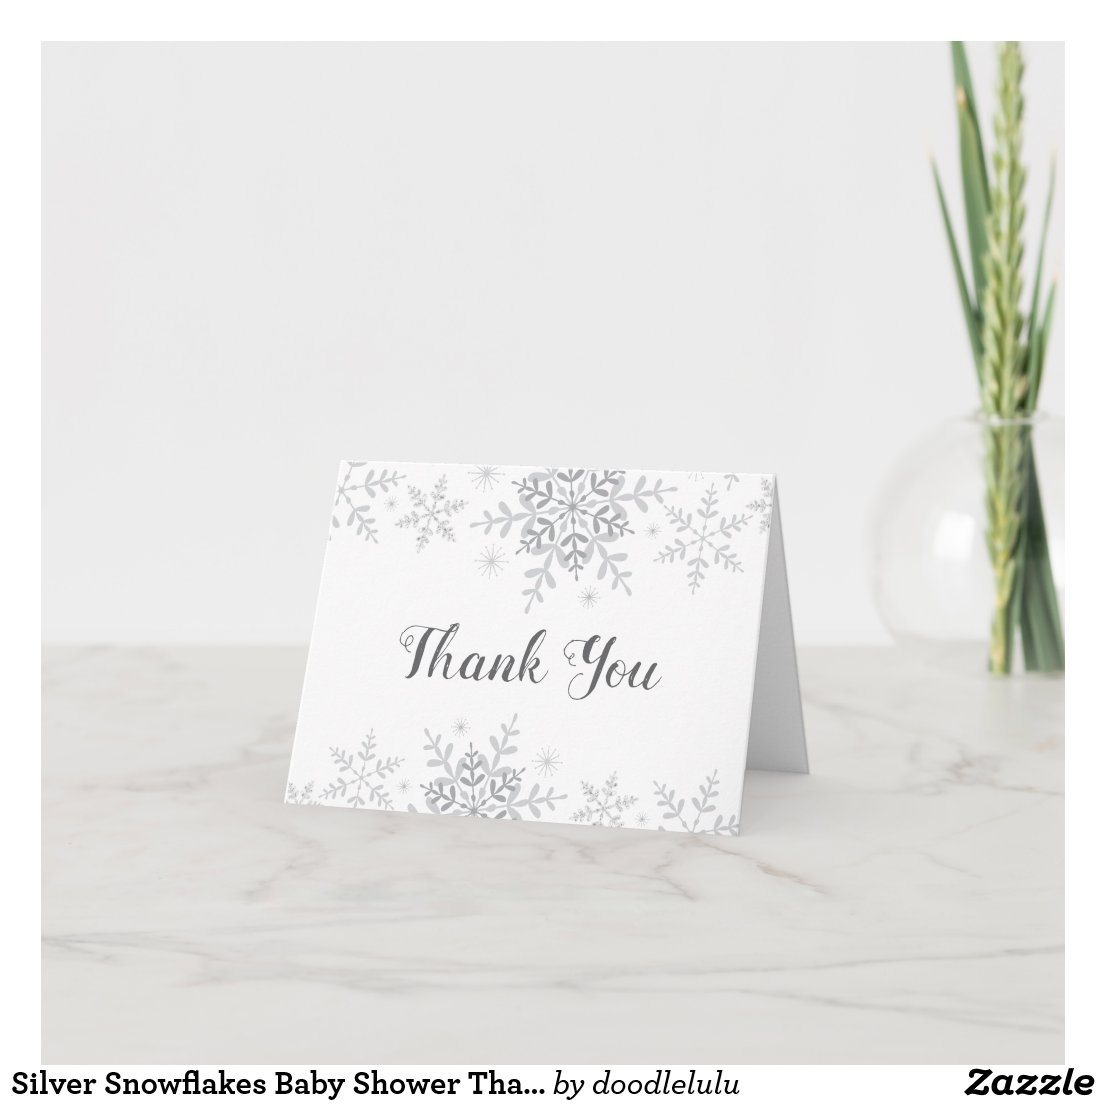 Silver Snowflakes Baby Shower Thank You Card